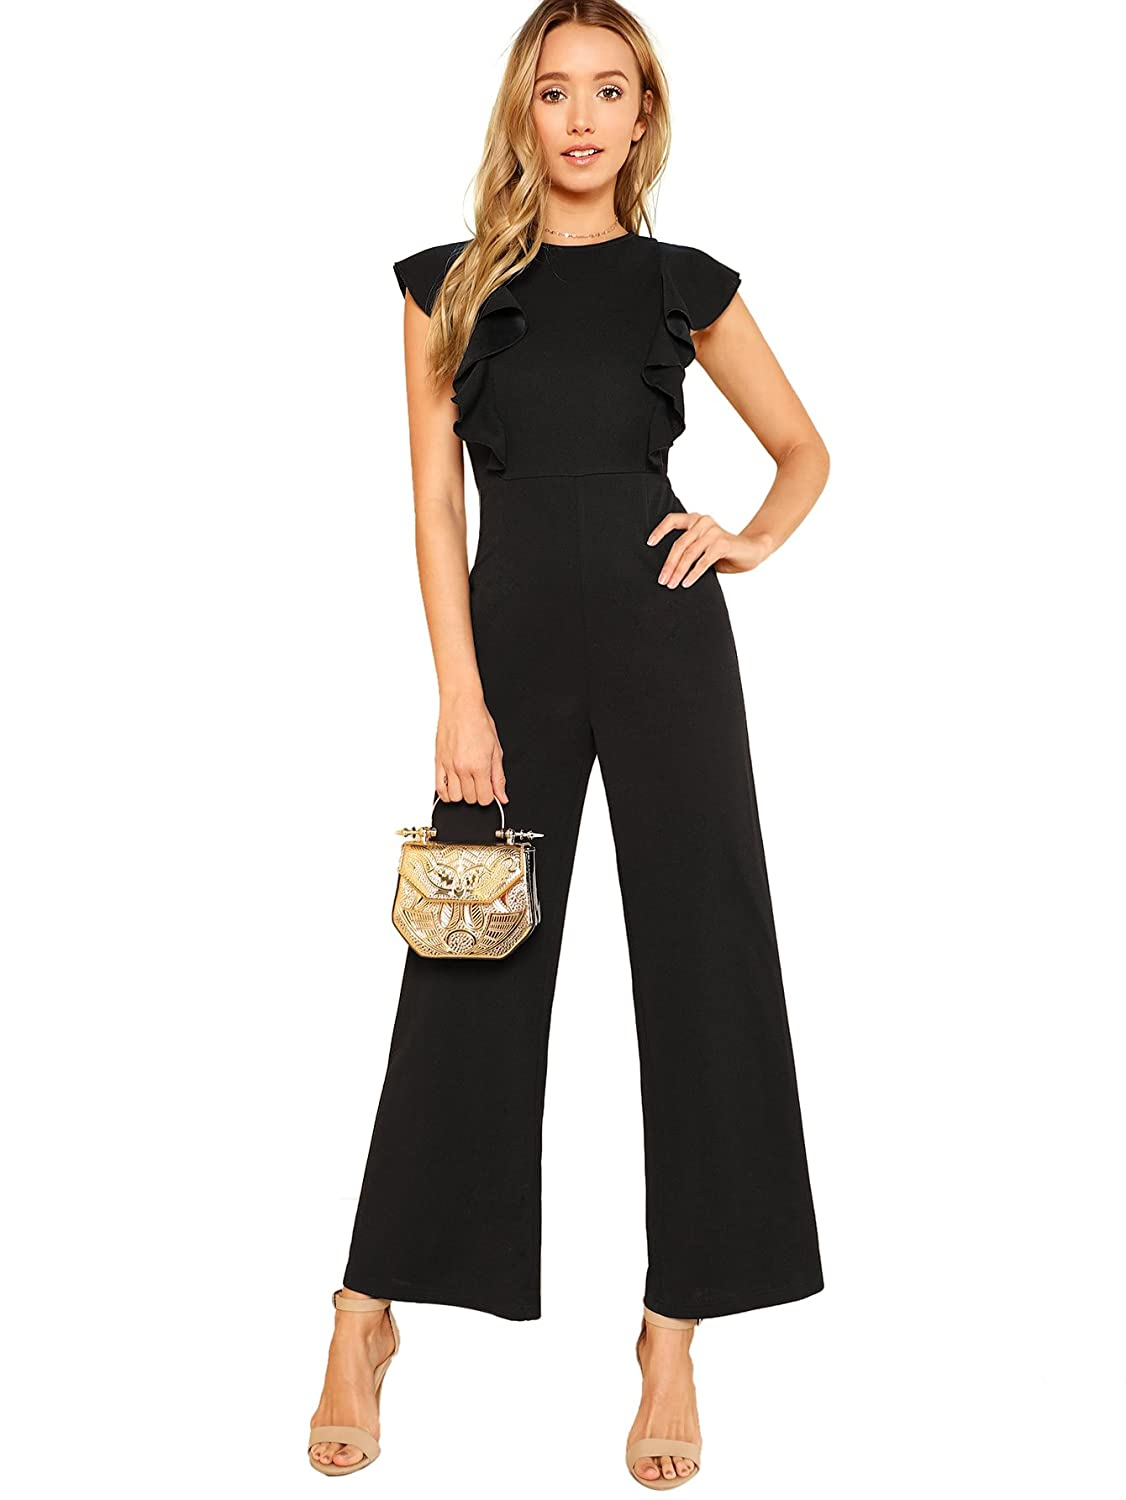 d50b964235d Amazon.com  Romwe Women s Sexy Casual Sleeveless Ruffle Trim Wide Leg High  Waist Long Jumpsuit  Clothing